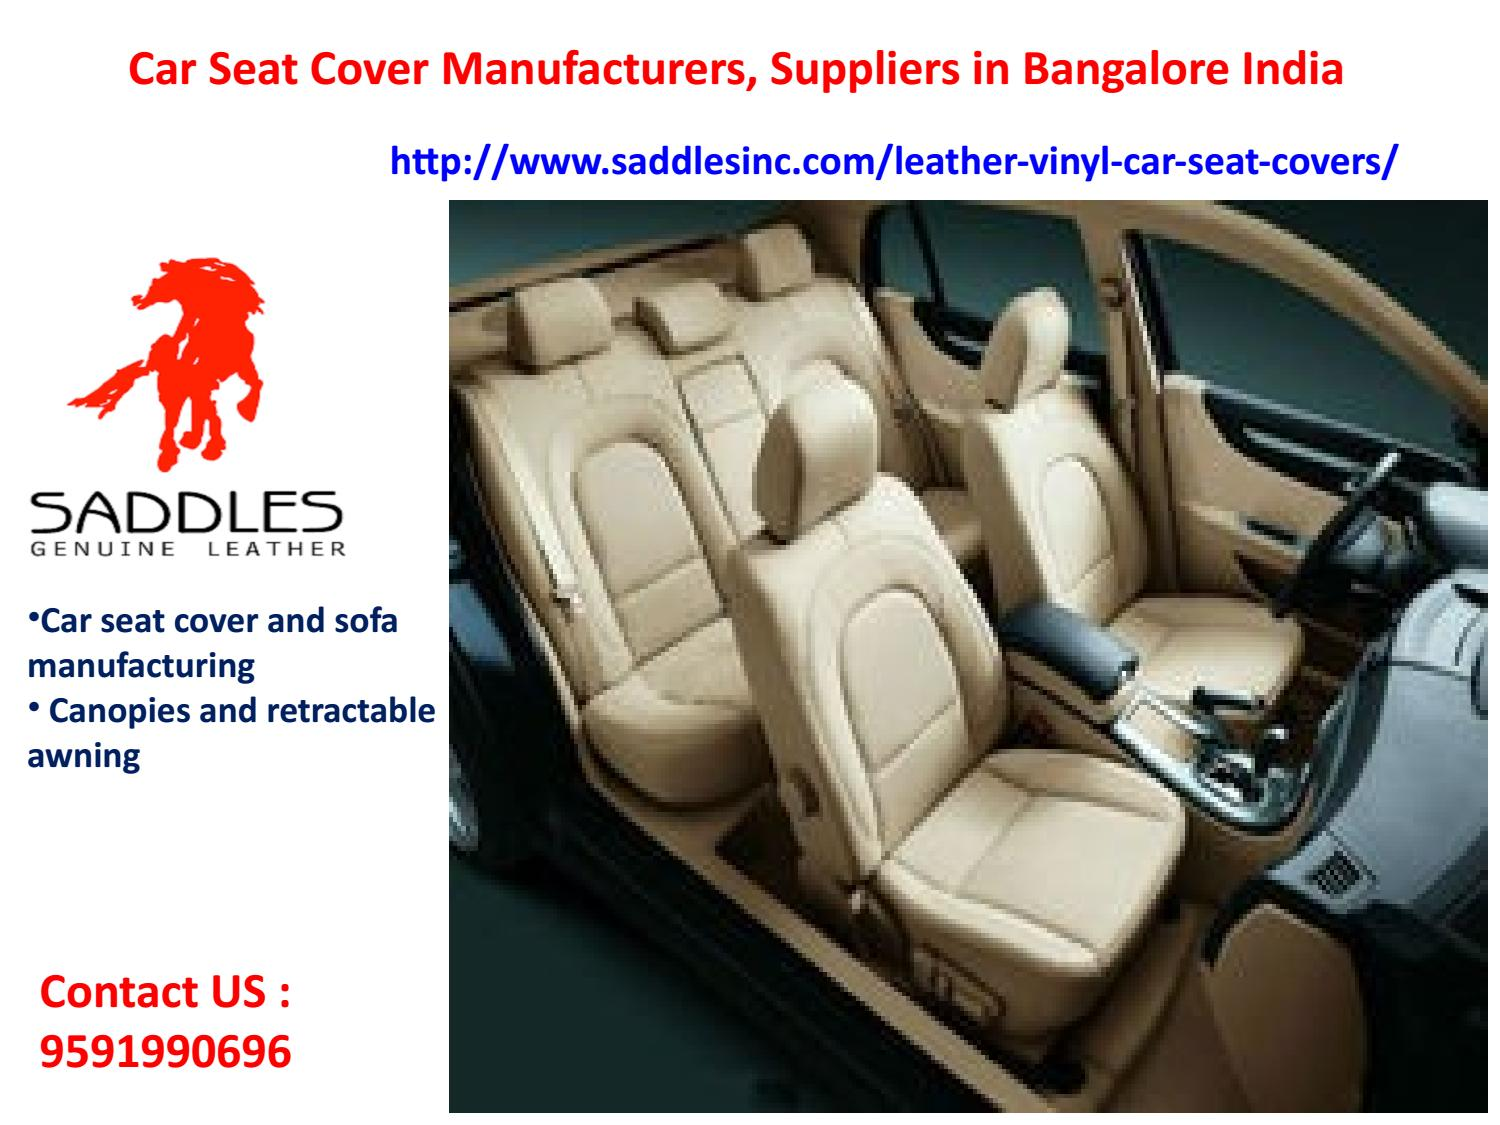 Car Seat Cover Manufacturers Suppliers In Bangalore India By Saddlesinc